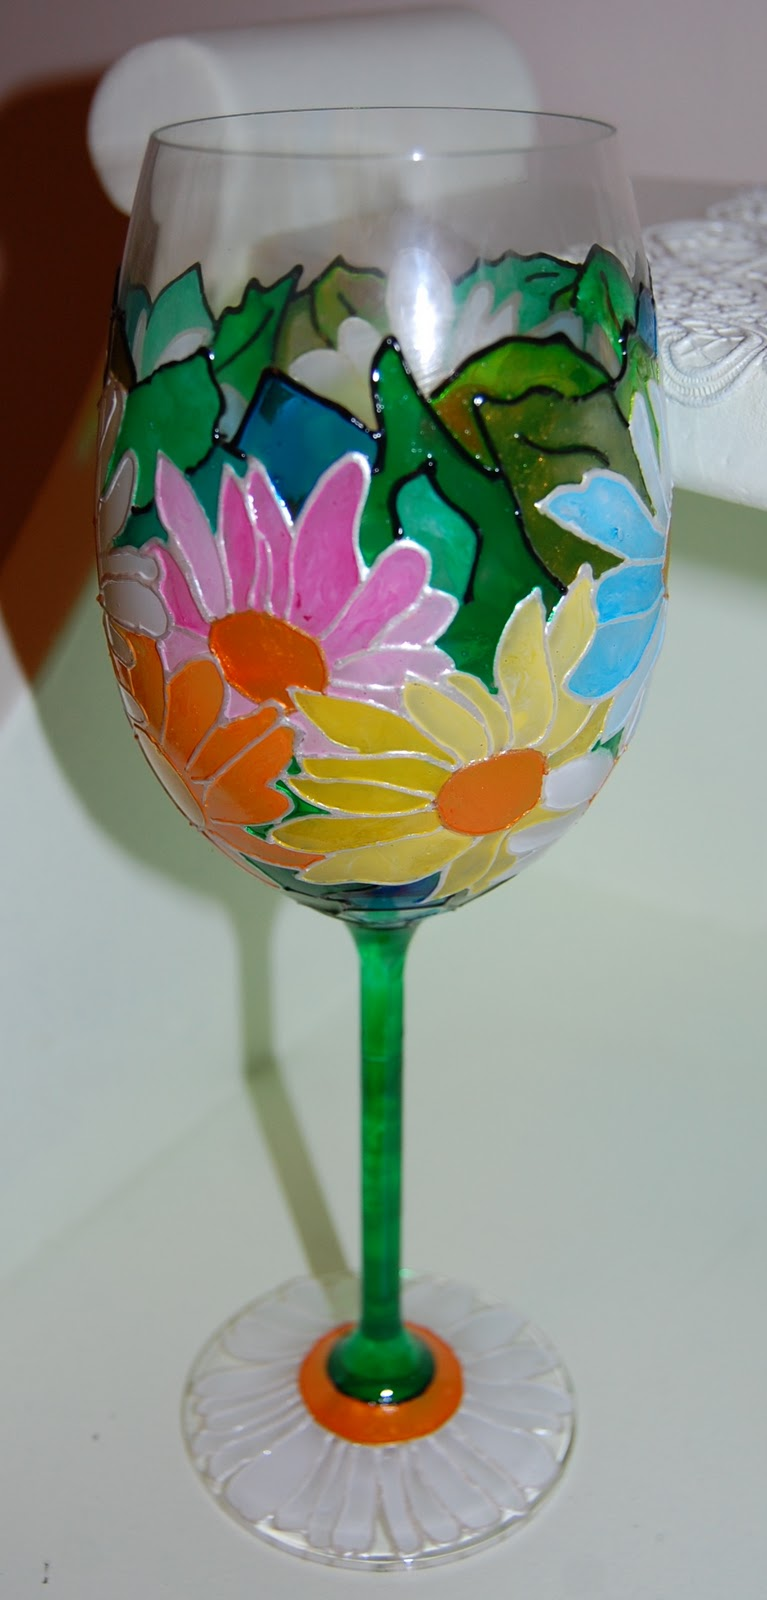 My art glass world wine glass 2 daisies for How to paint a wine glass with acrylics